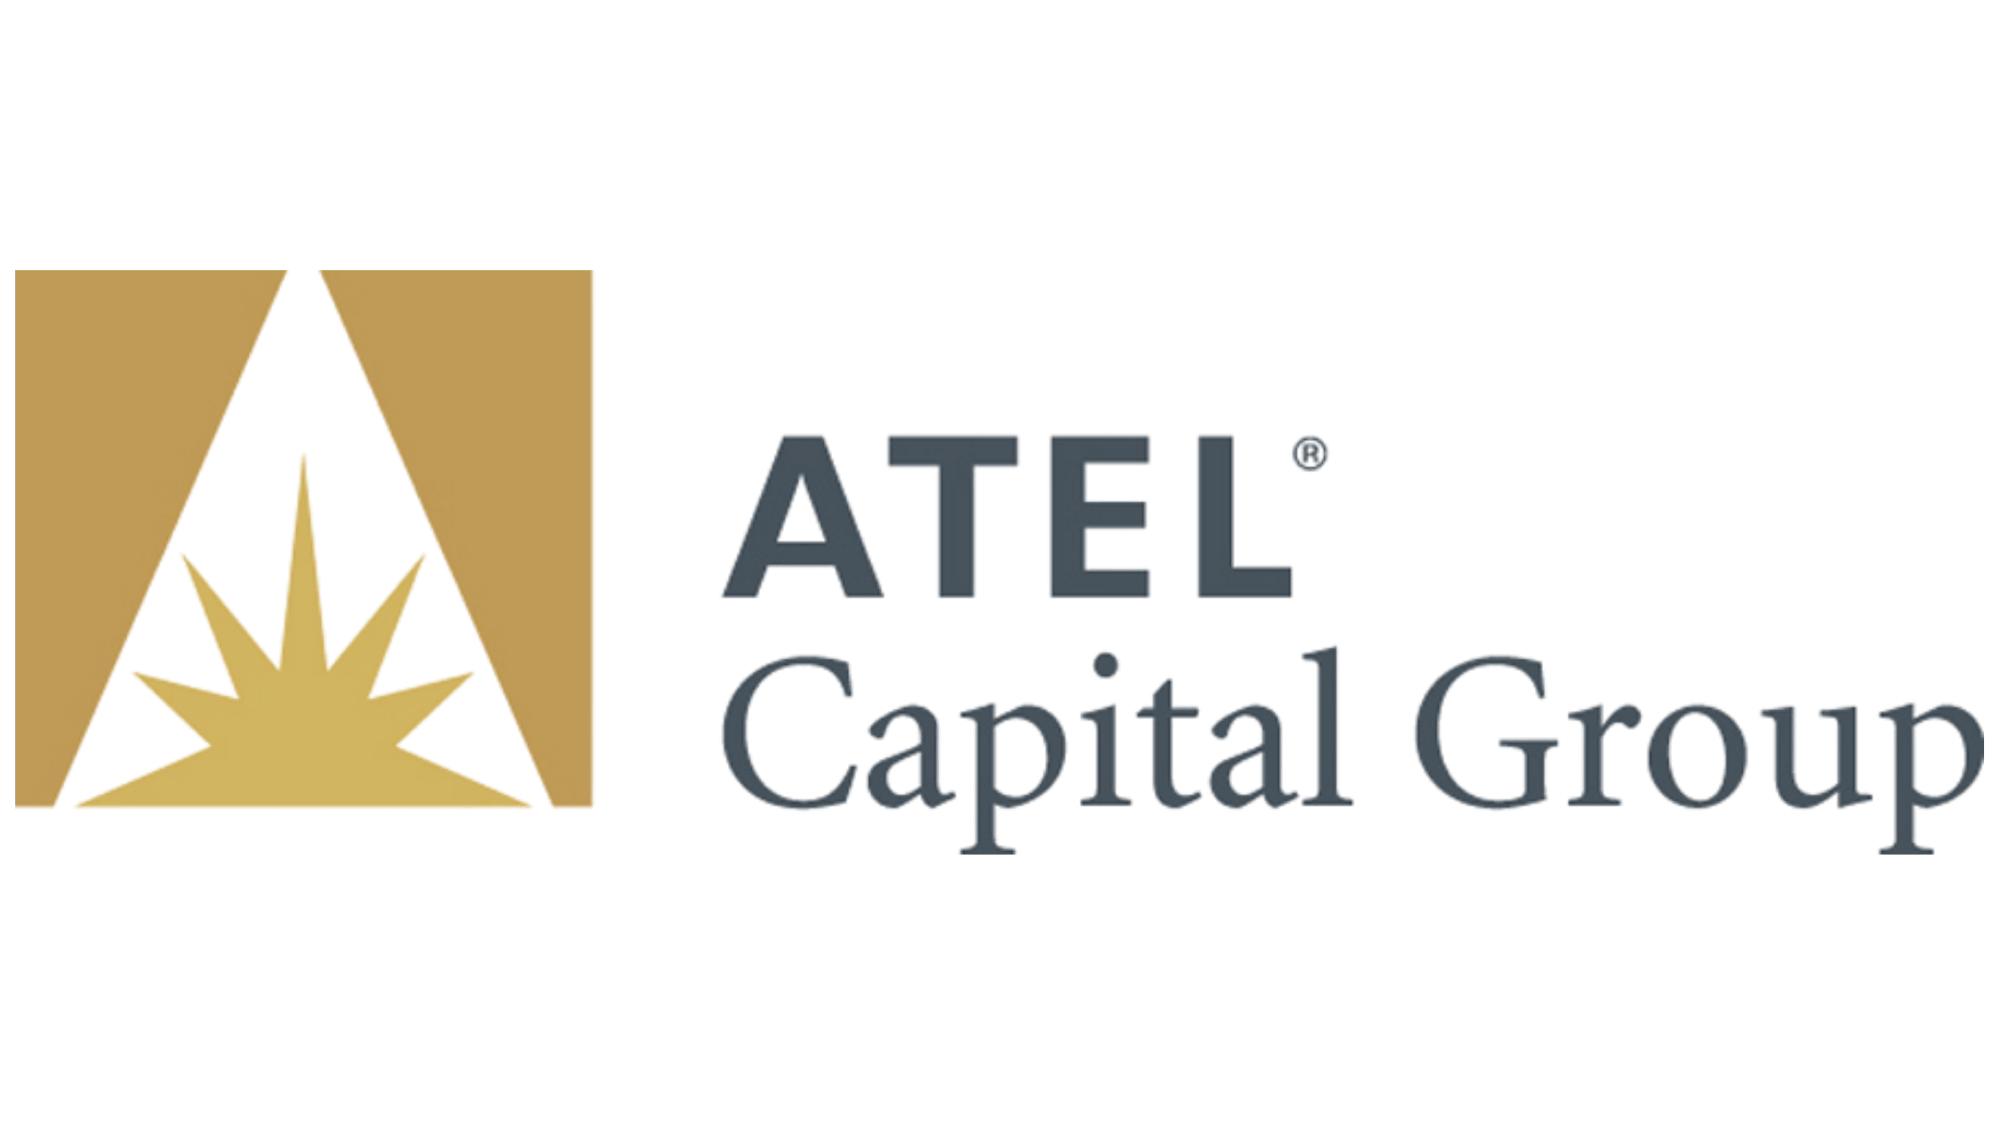 ATEL Capital Group